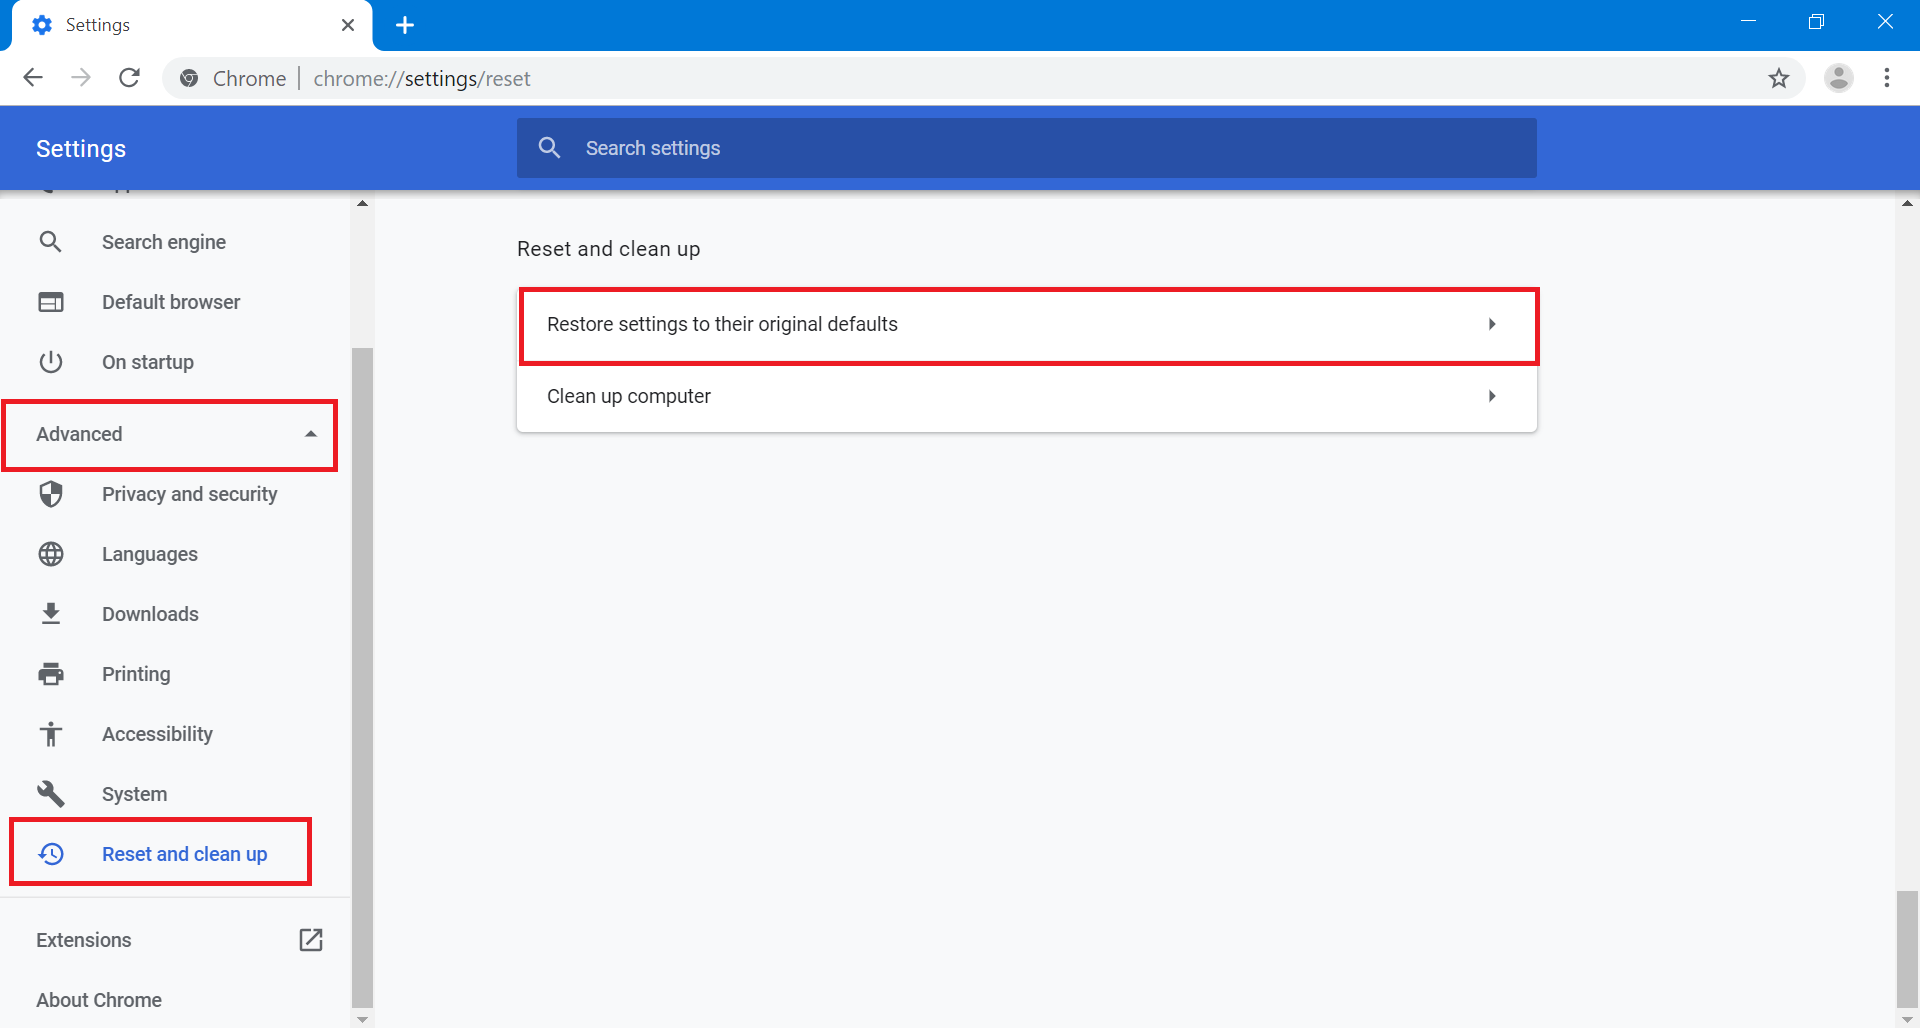 Click on the Advanced Settings option in the left navigation pane. In the list that collapses, choose the option labeled Reset & Clean-Up. Then select the option Restore settings to their original defaults.